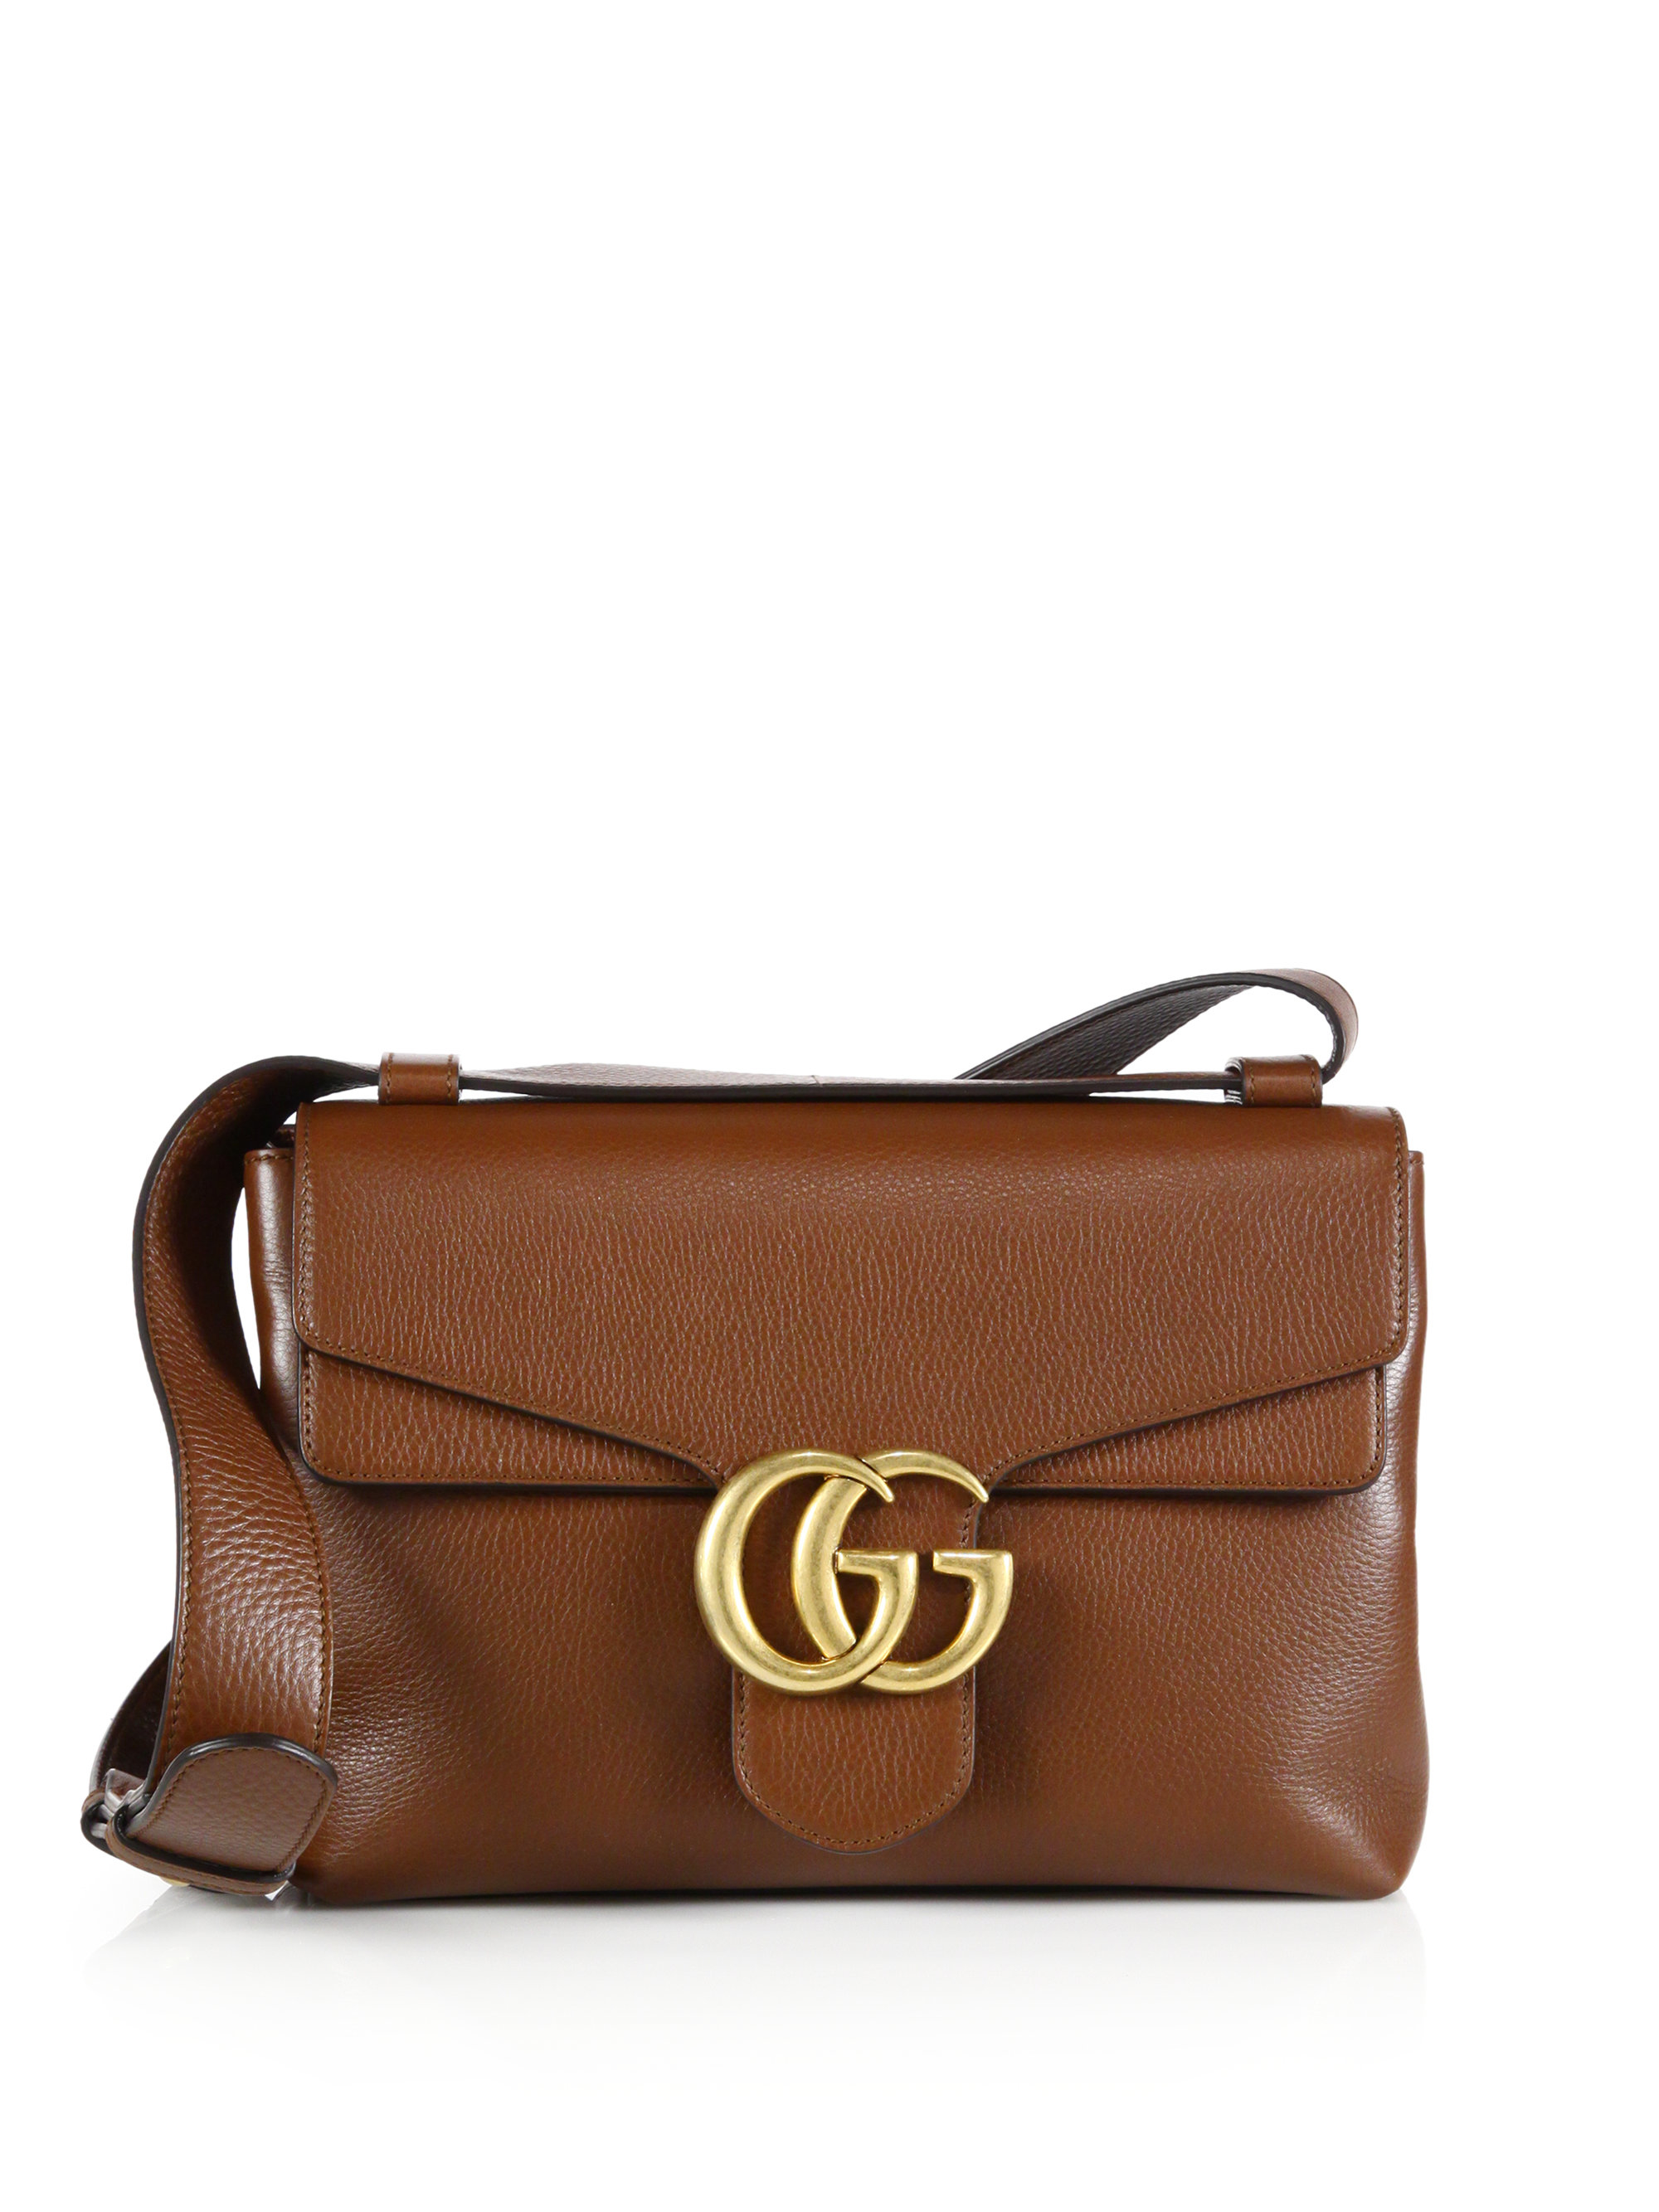 2295b513596c Gucci Marmont White Leather Bag | Stanford Center for Opportunity ...